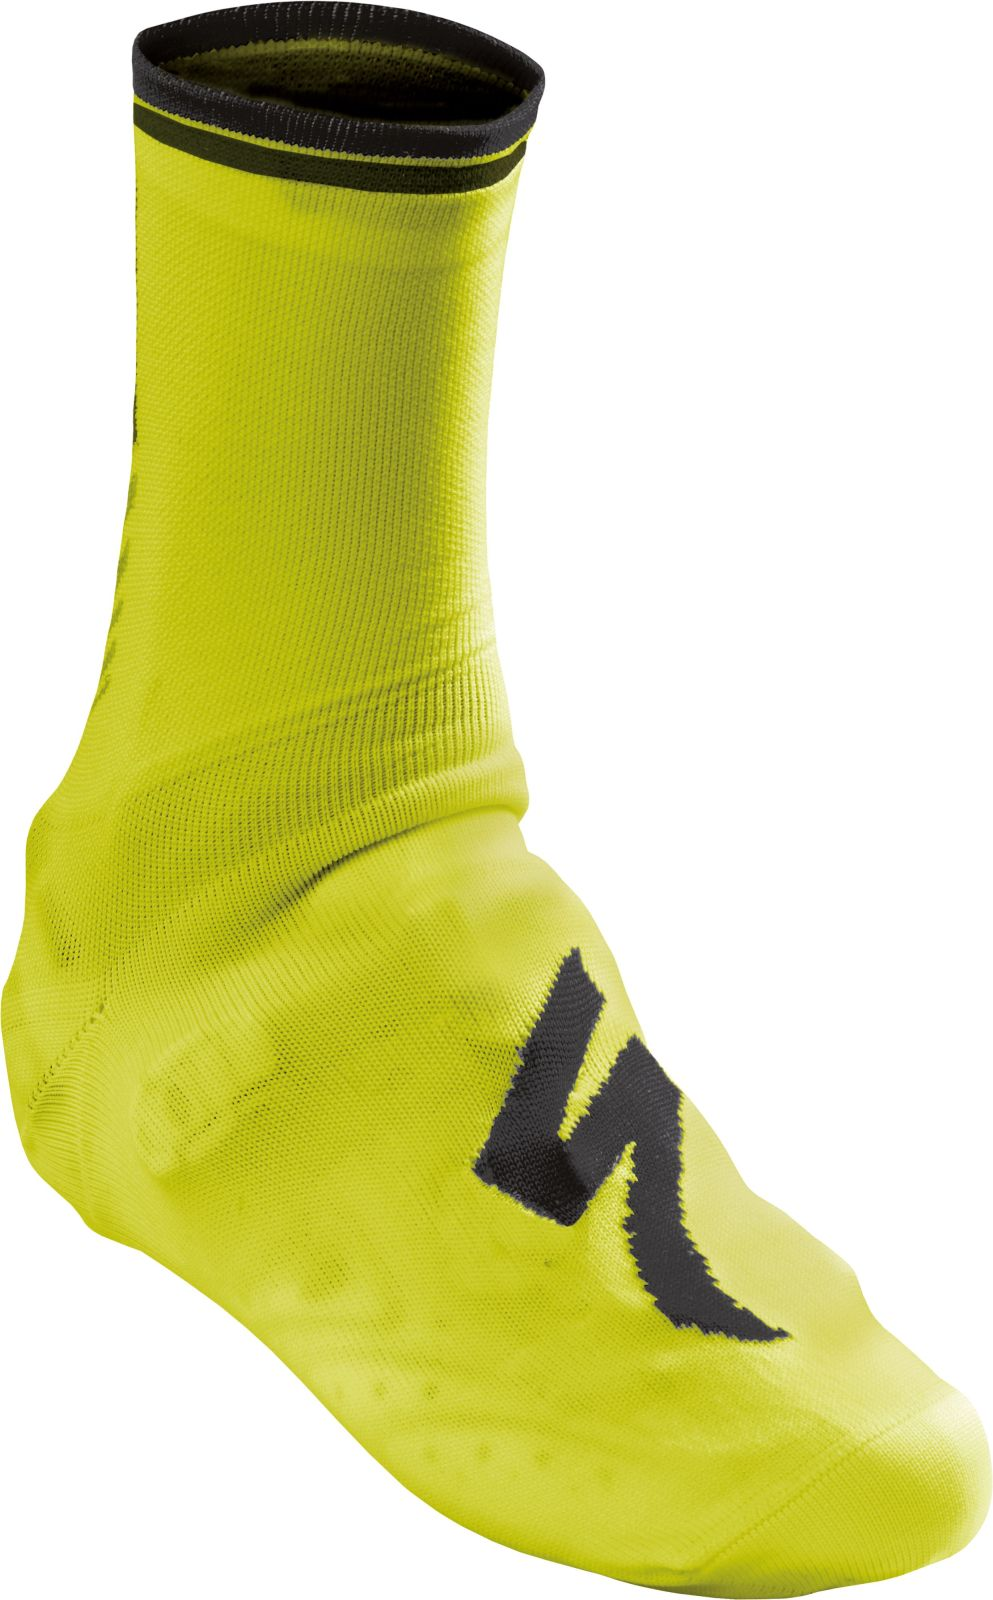 Specialized Shoe Covers Socks - neon yellow S